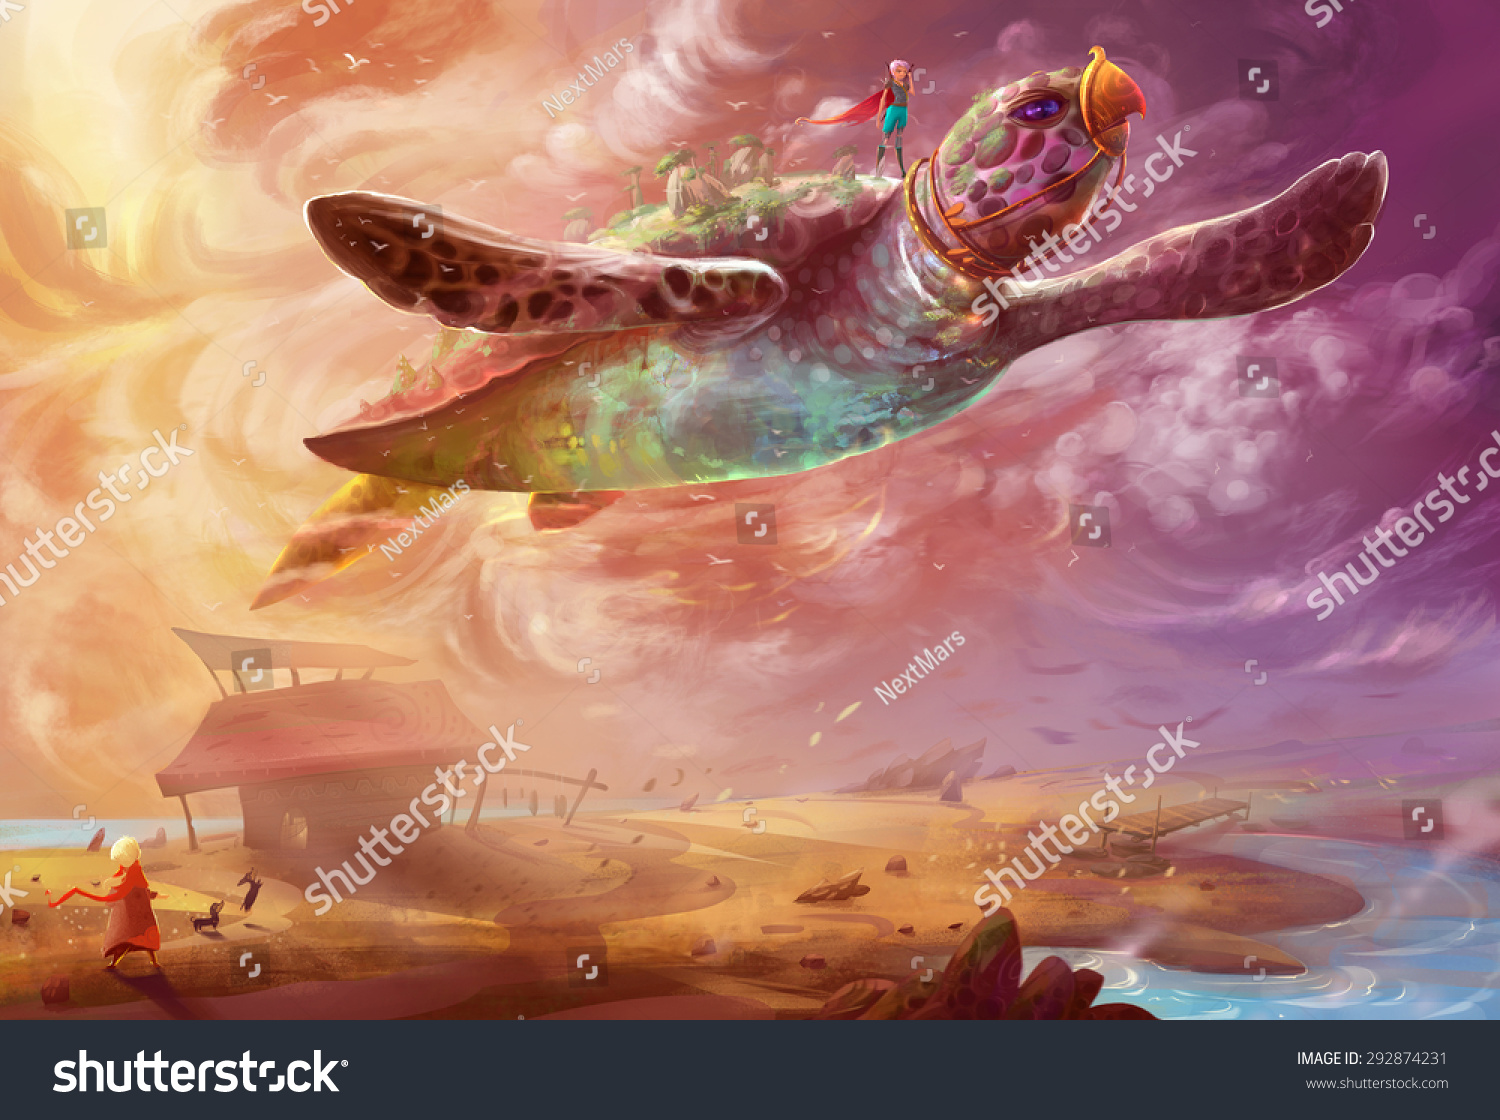 Illustration The Flying Turtle One Story of the Song of the Sea Series Scene Design Fantasy Topic Fantastic Realistic Style